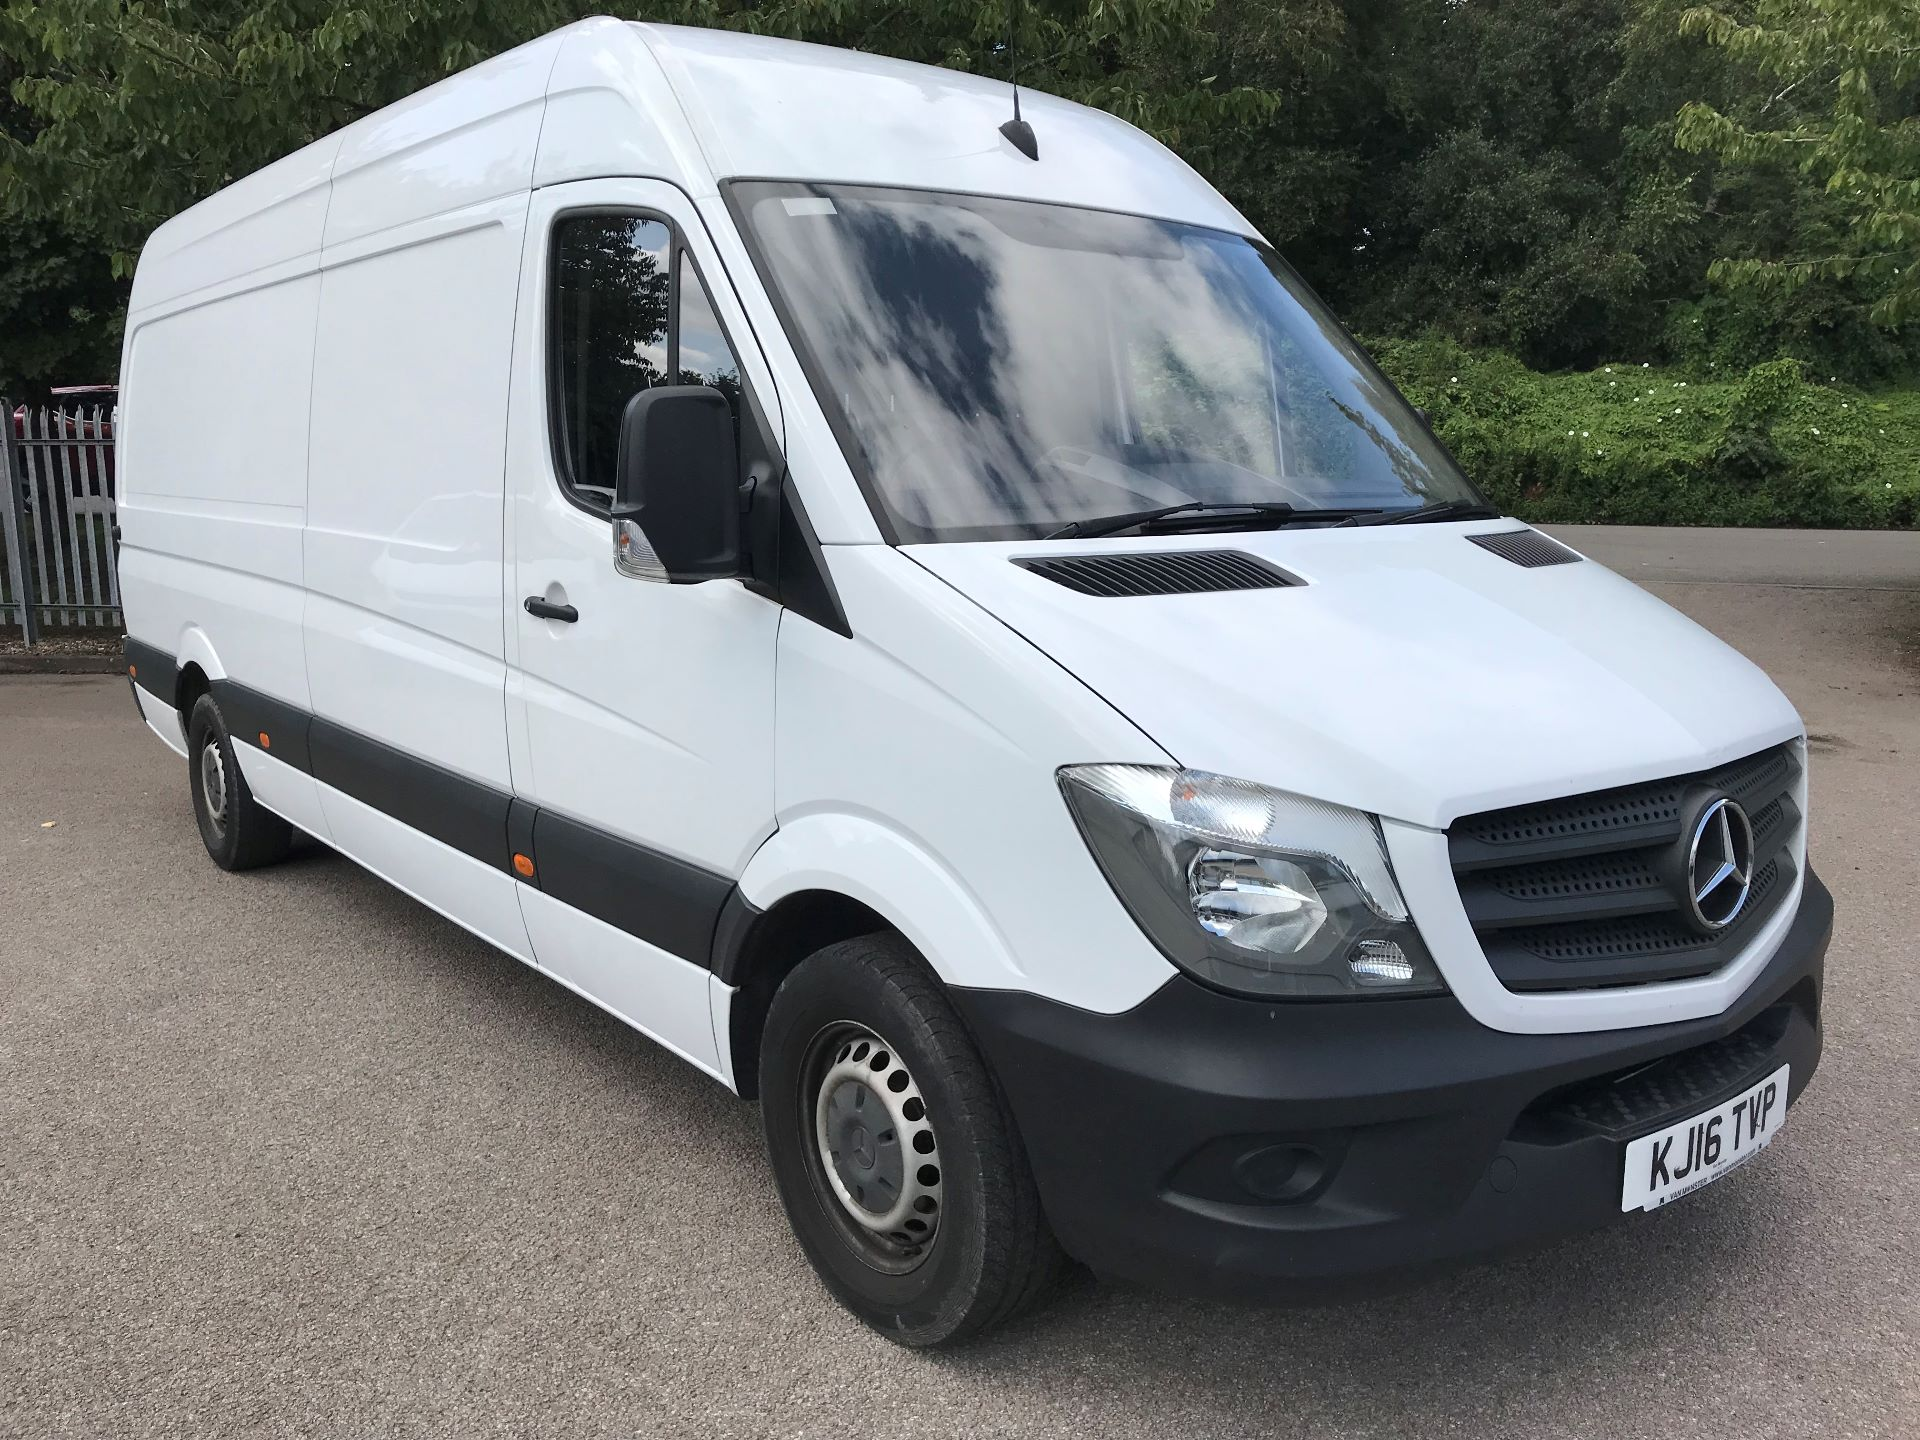 2016 Mercedes-Benz Sprinter 3.5T High Roof Van (KJ16TVP)